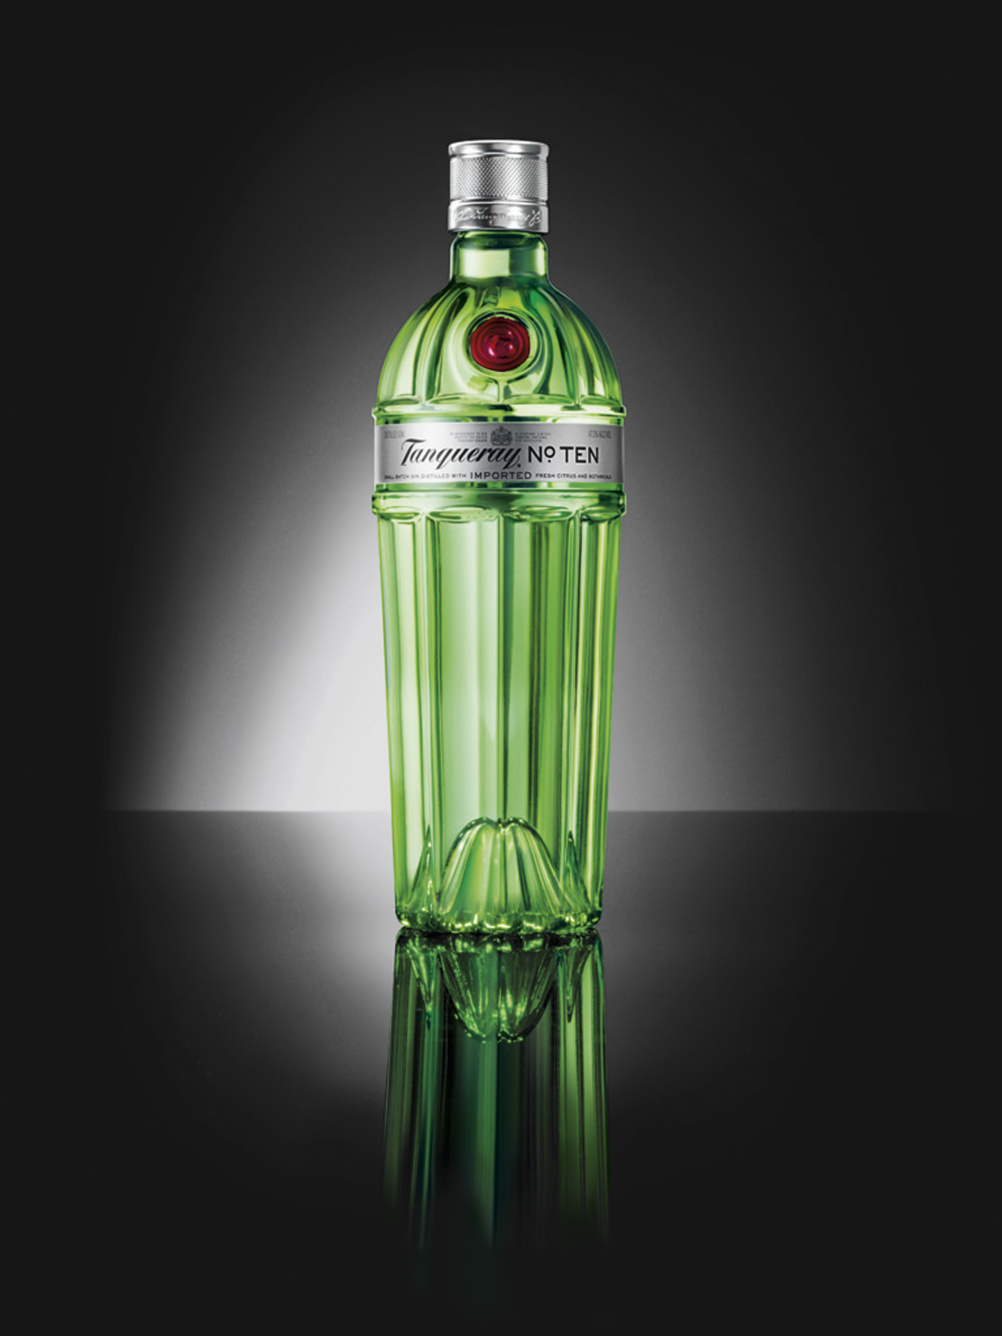 Design Bridge's new packaging for Tanqueray No.Ten, for Diageo